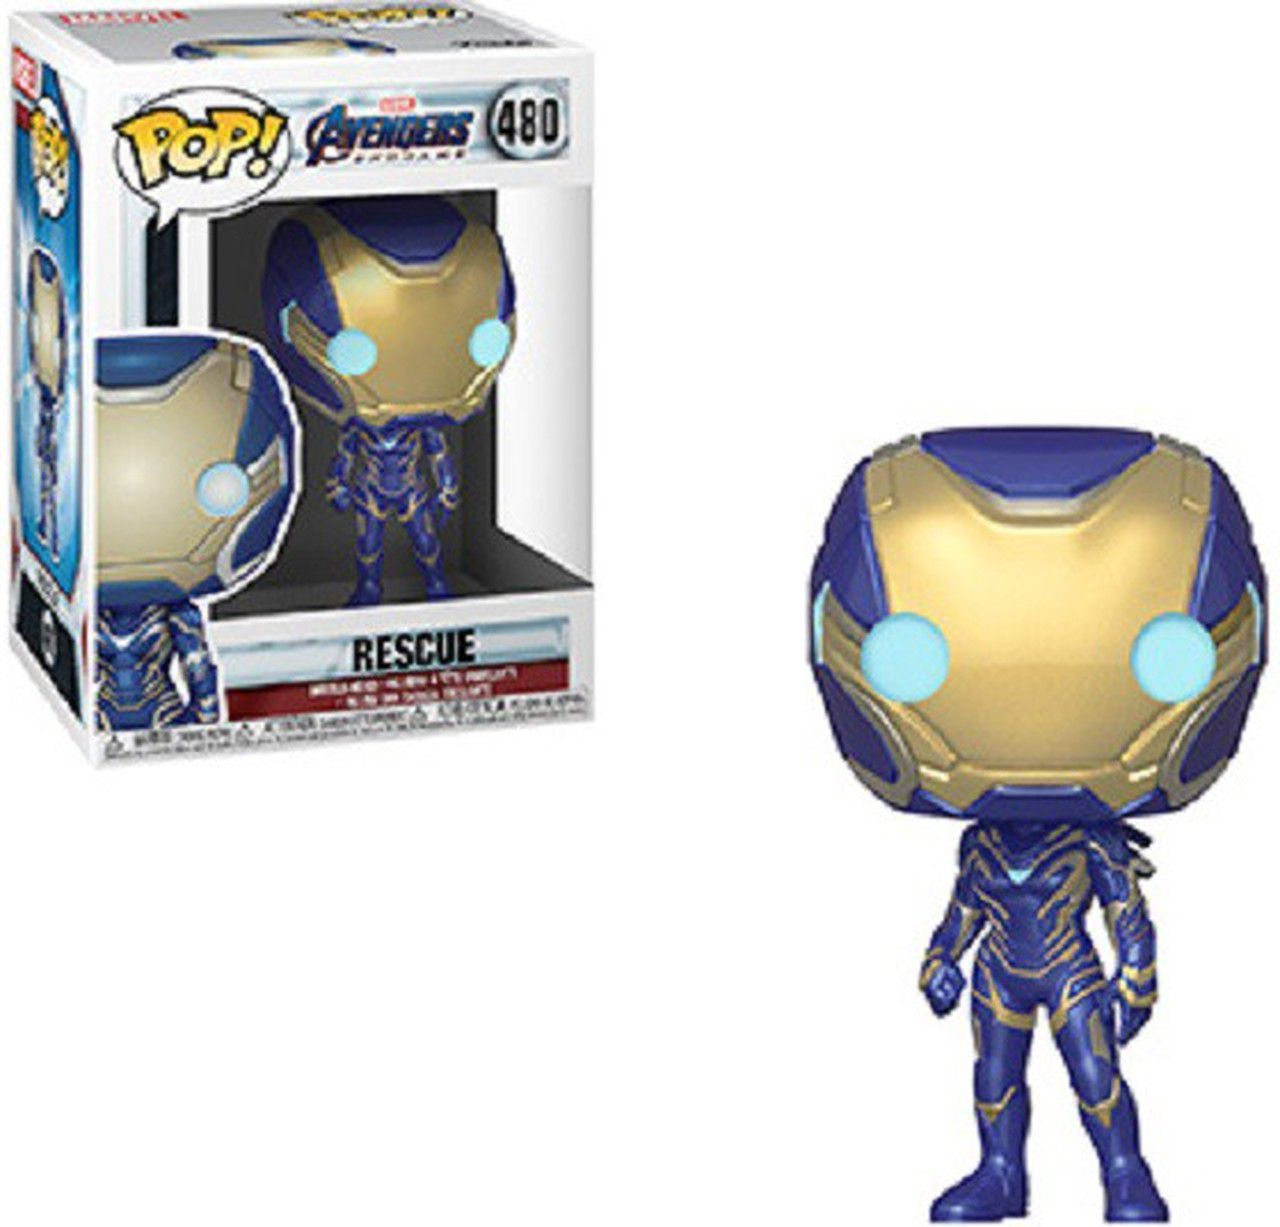 POP FUNKO 480 RESCUE AVENGERS END GAME PEPPER POTS